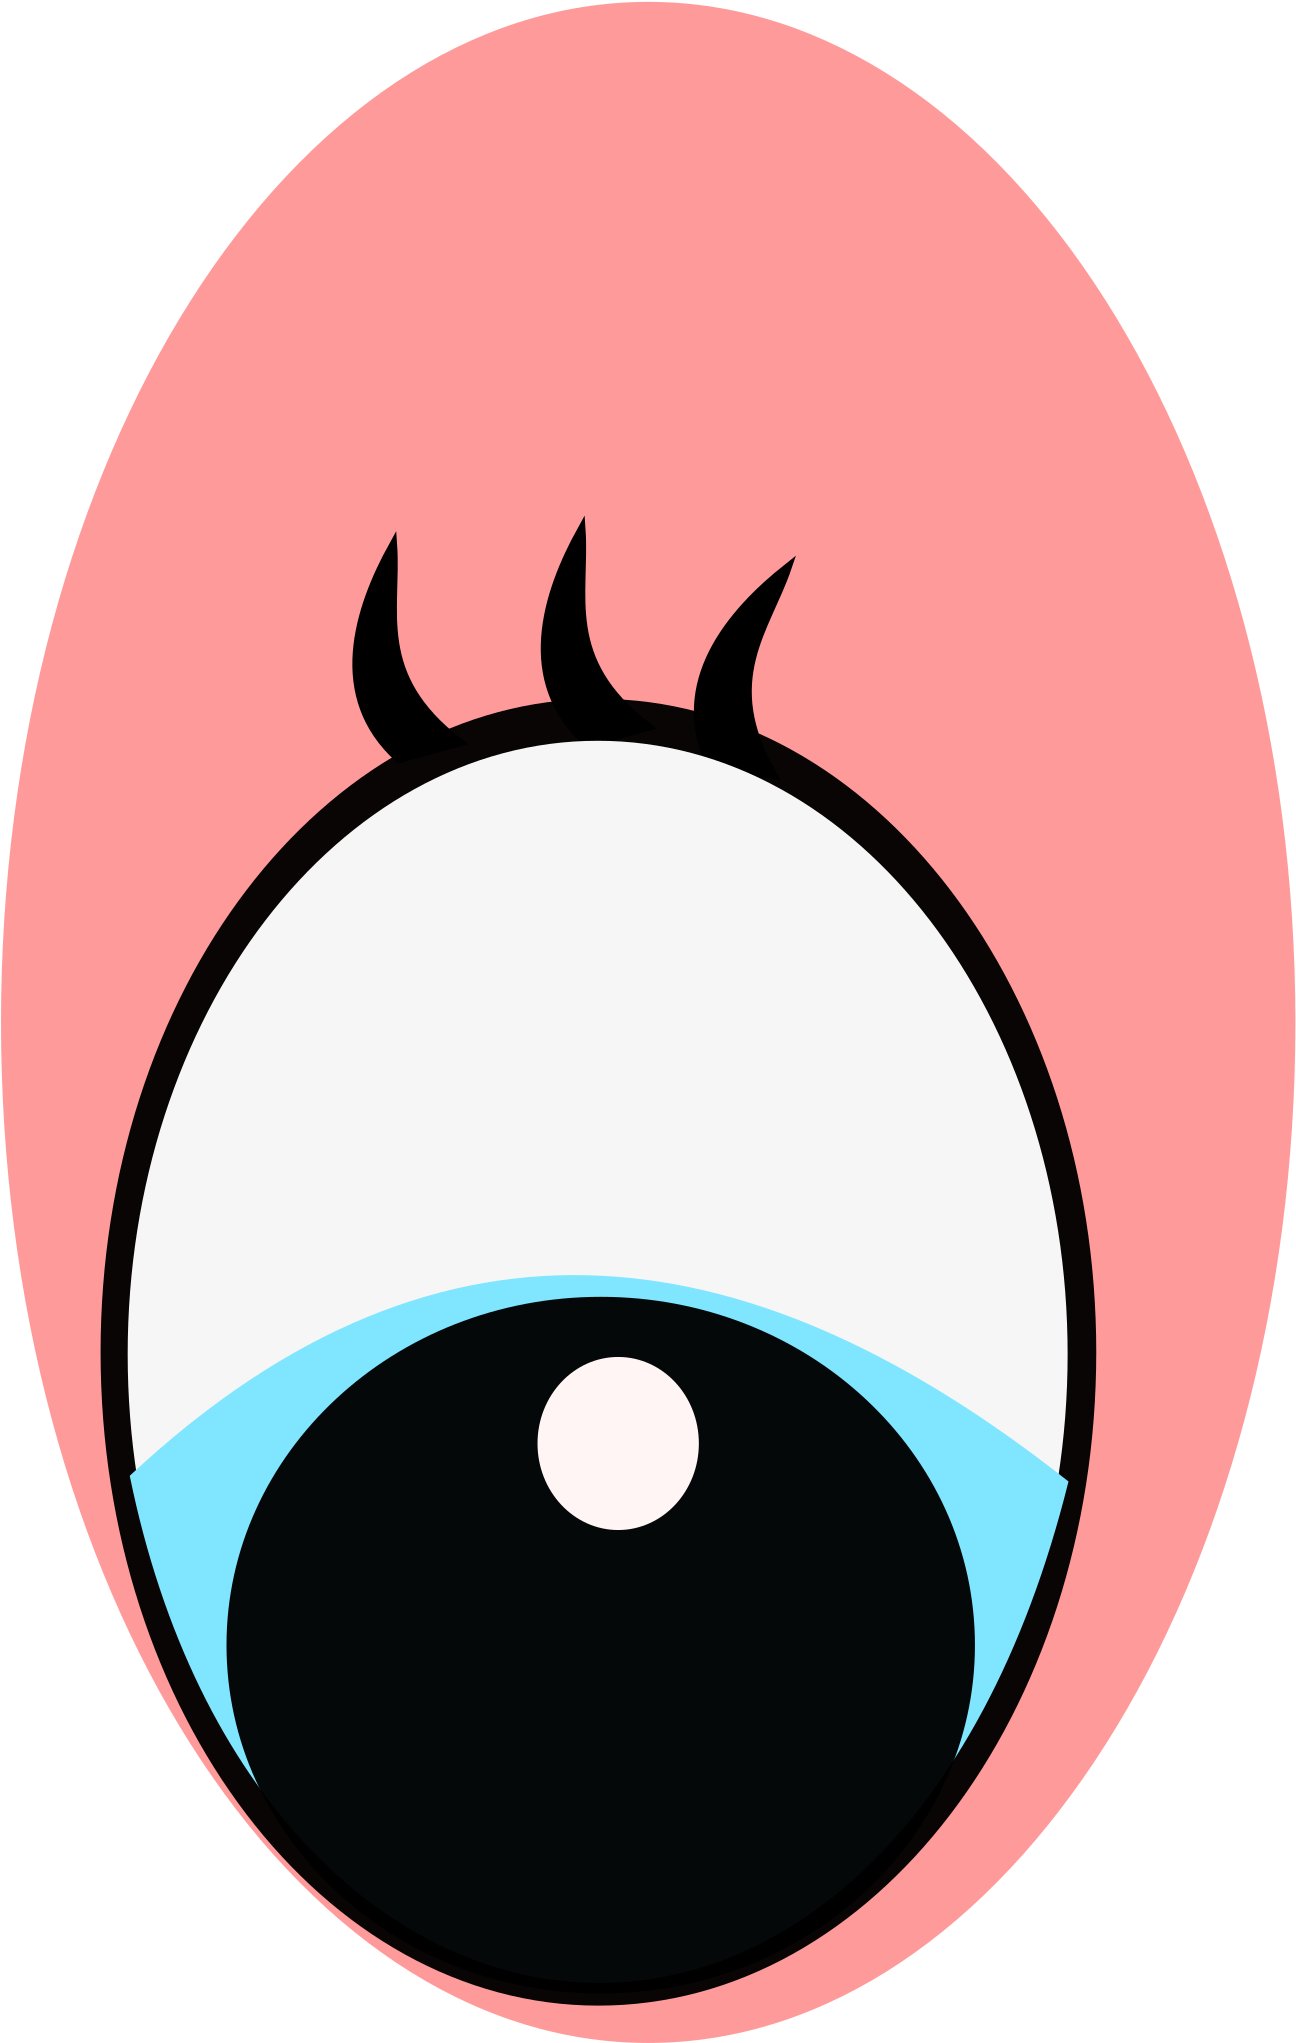 Googly Eyes Png Big Cartoon Eyes Clipart Cartoon Eyes